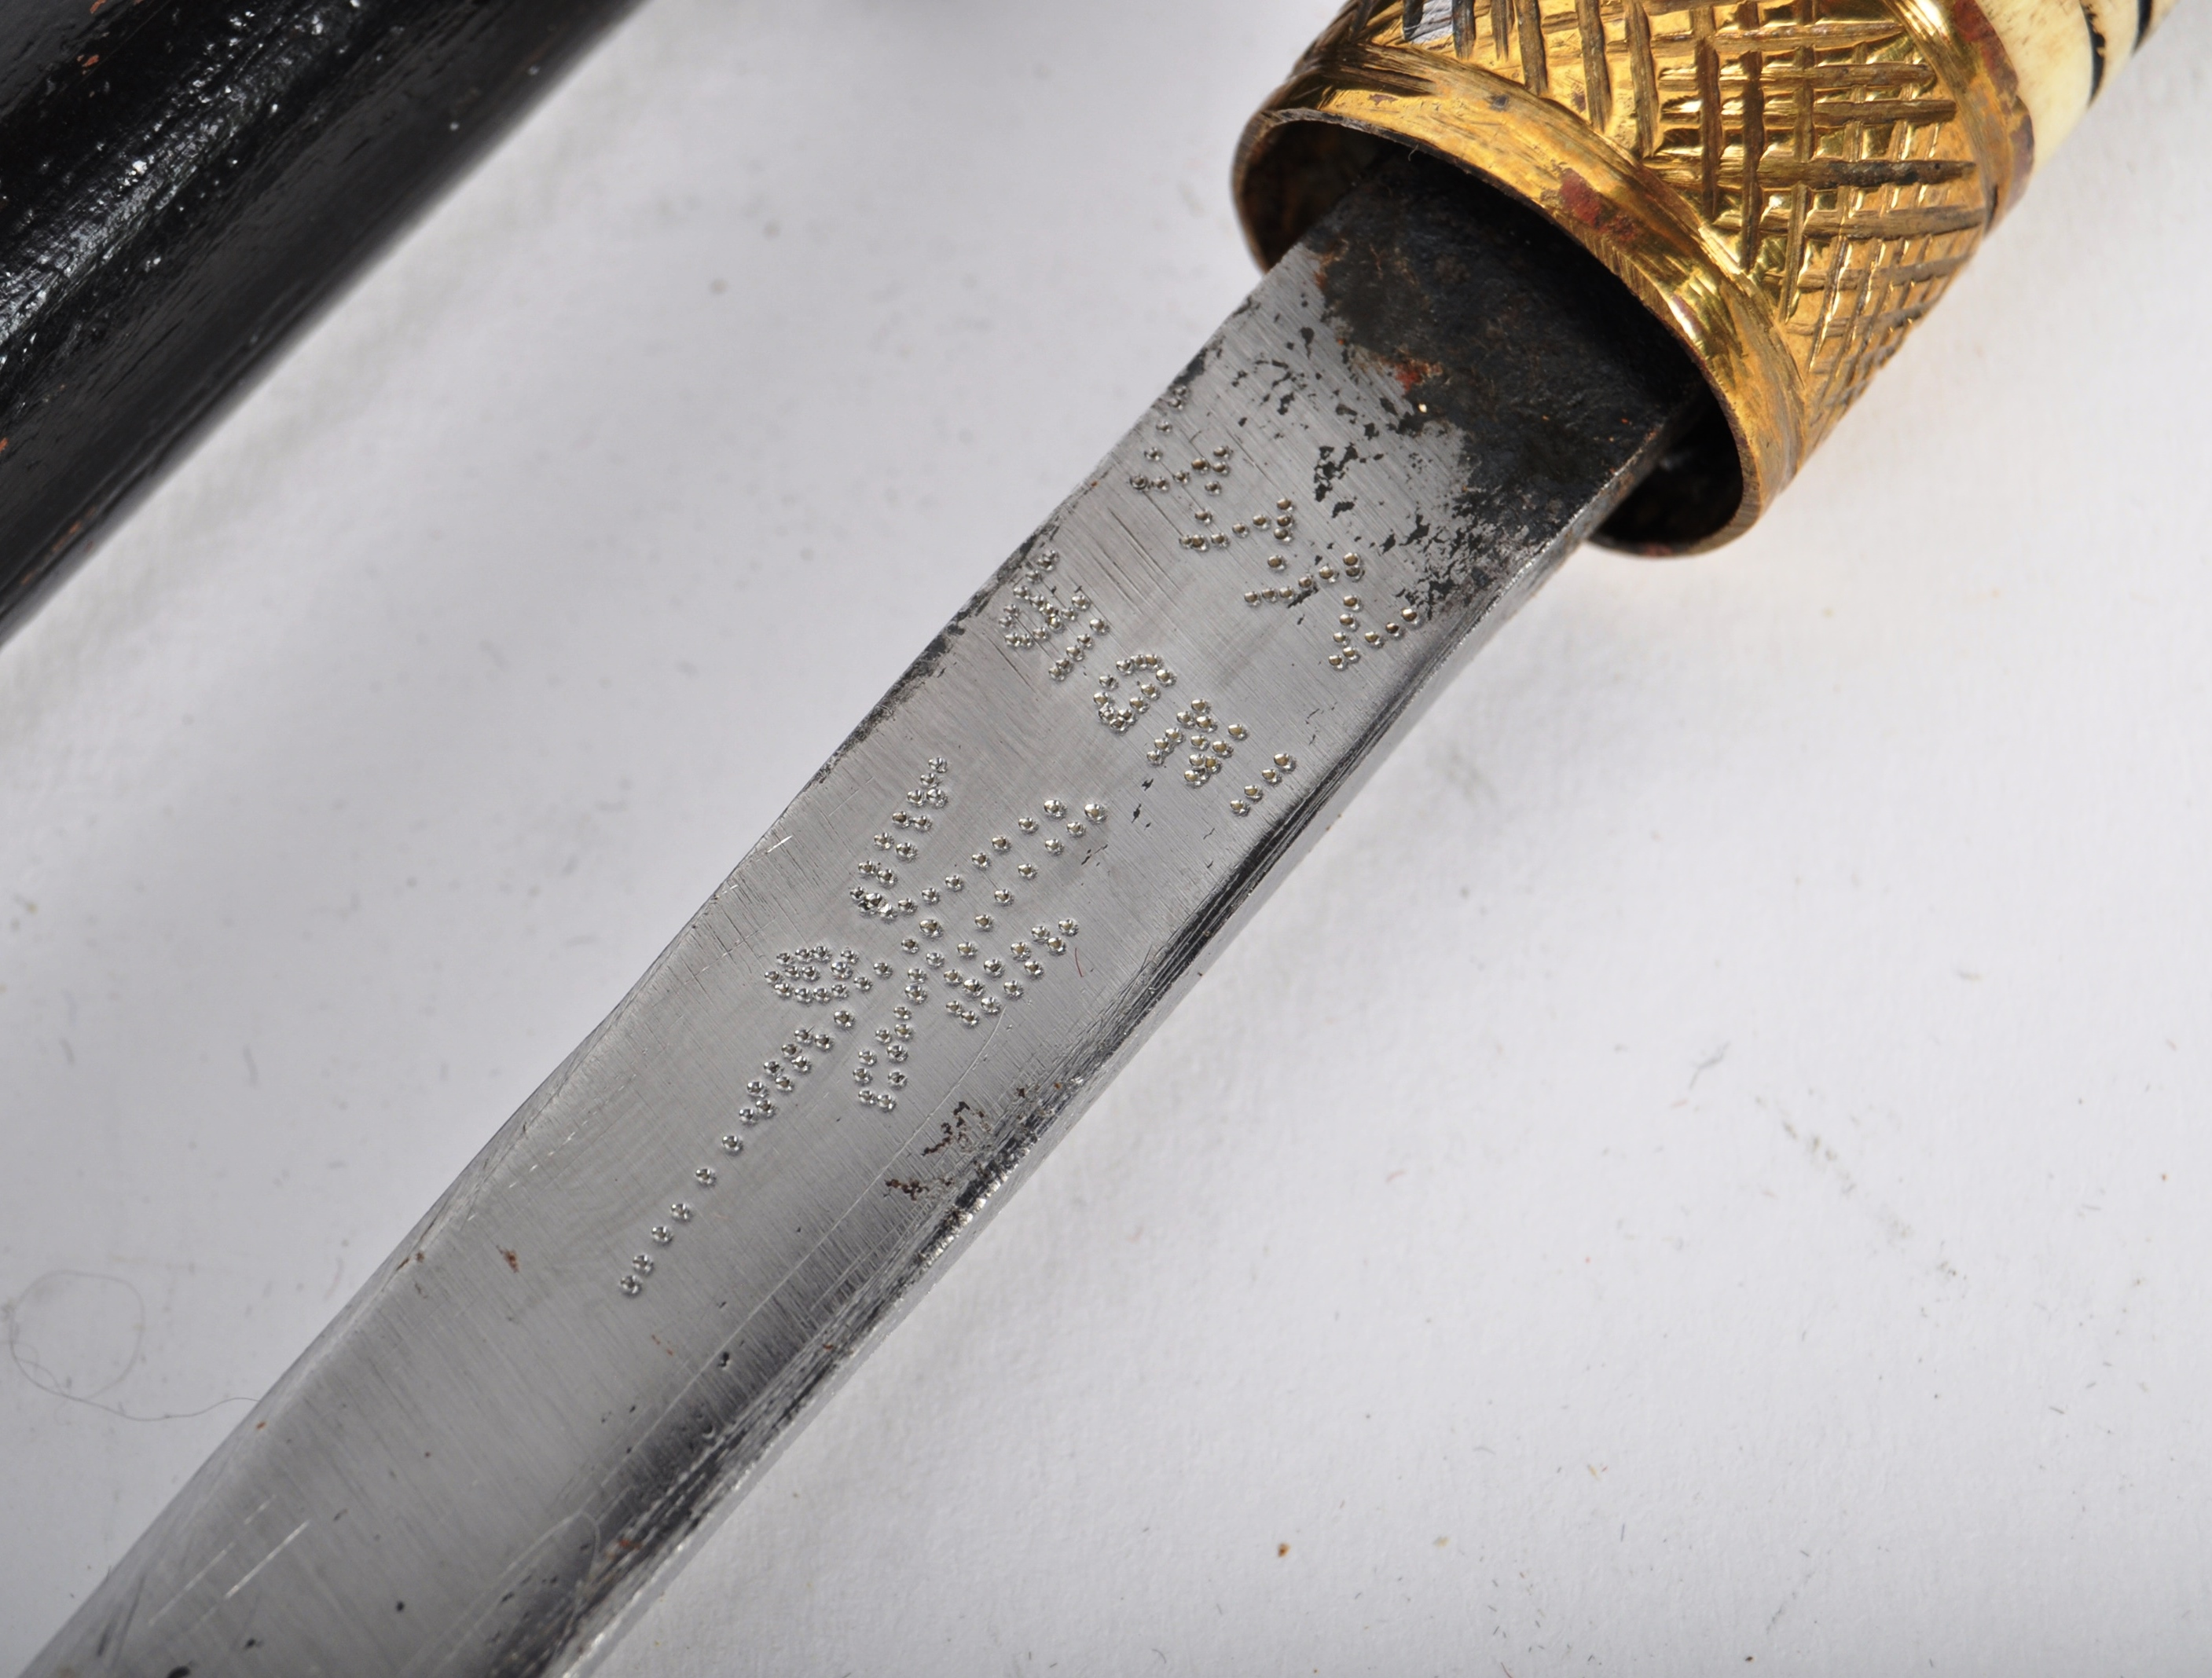 LATE 19TH CENTURY INDIAN SWORD STICK WITH CONSEALED BLADE - Image 4 of 7